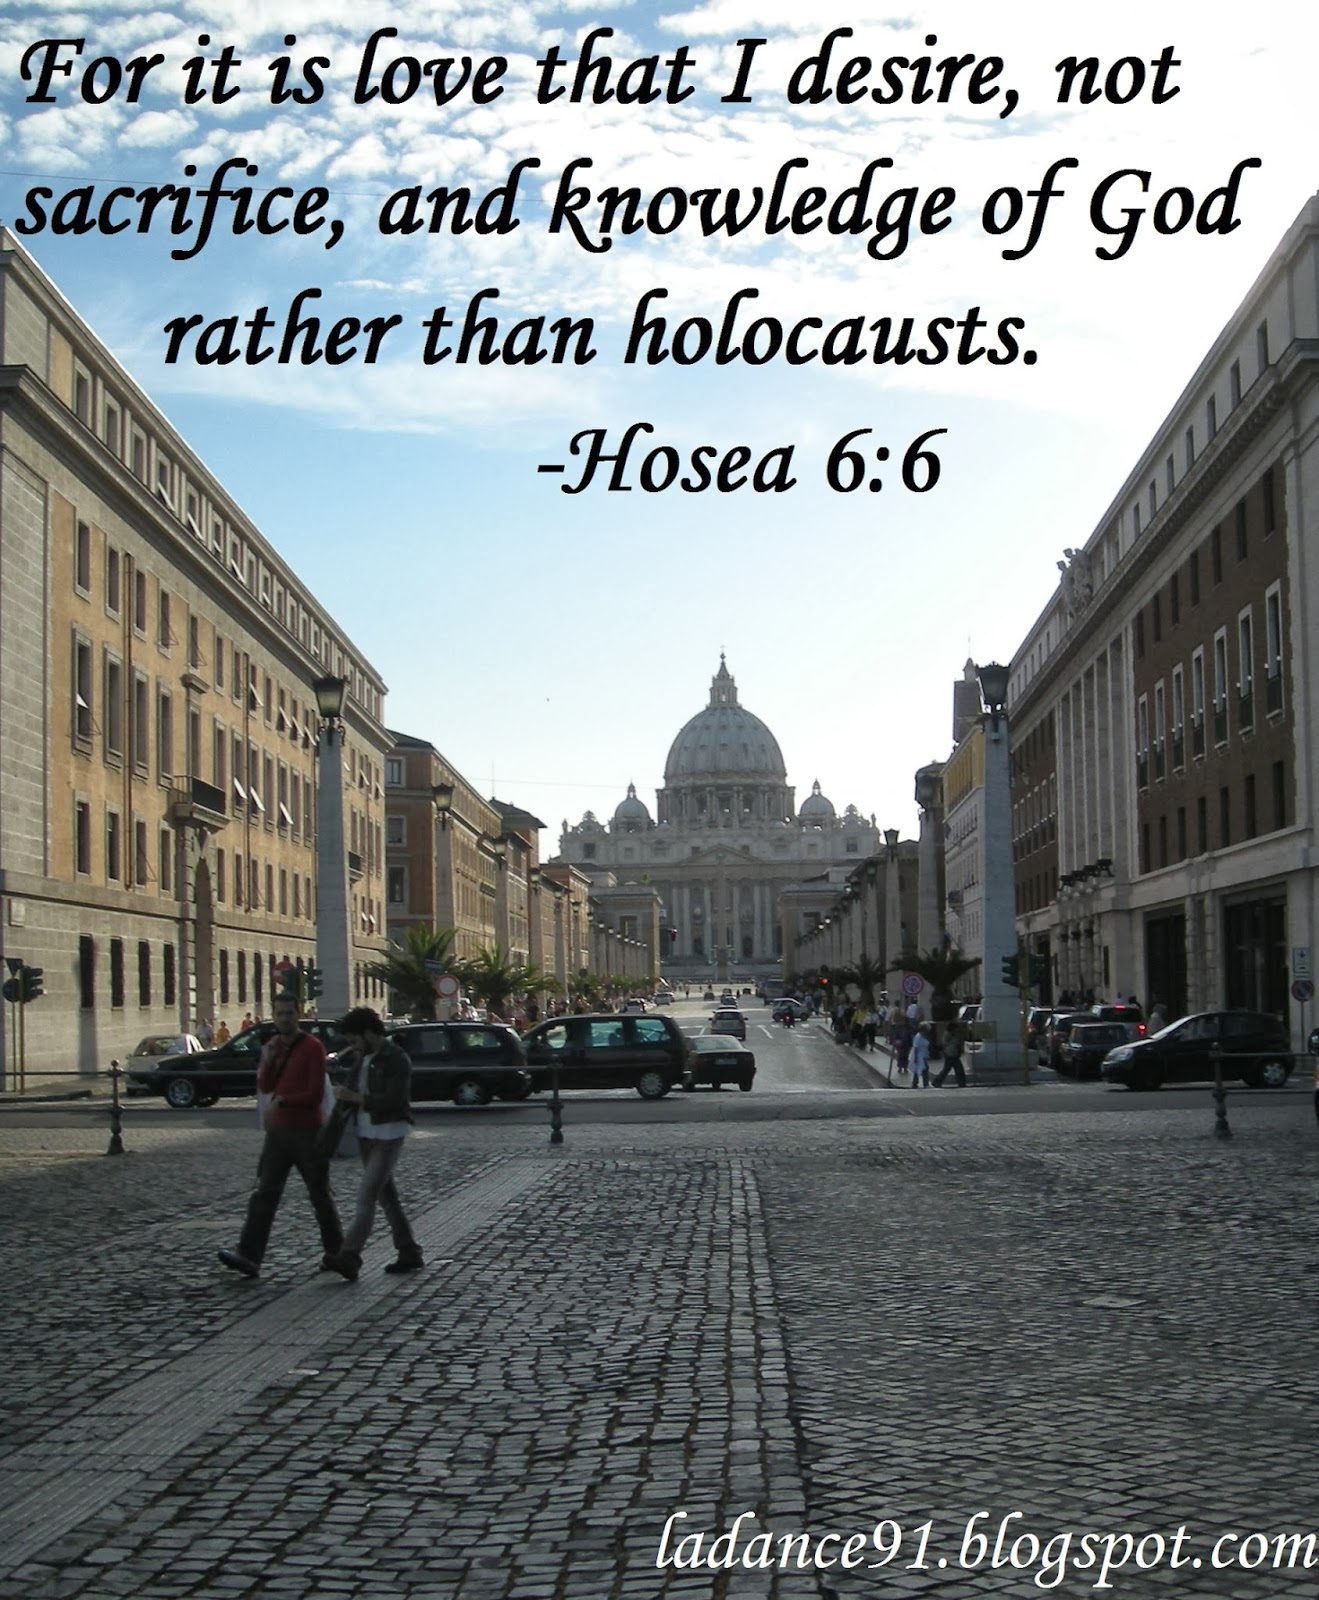 Hosea 6:6 for it is love that I desire, not sacrifice, and knowledge of God rather than holocausts